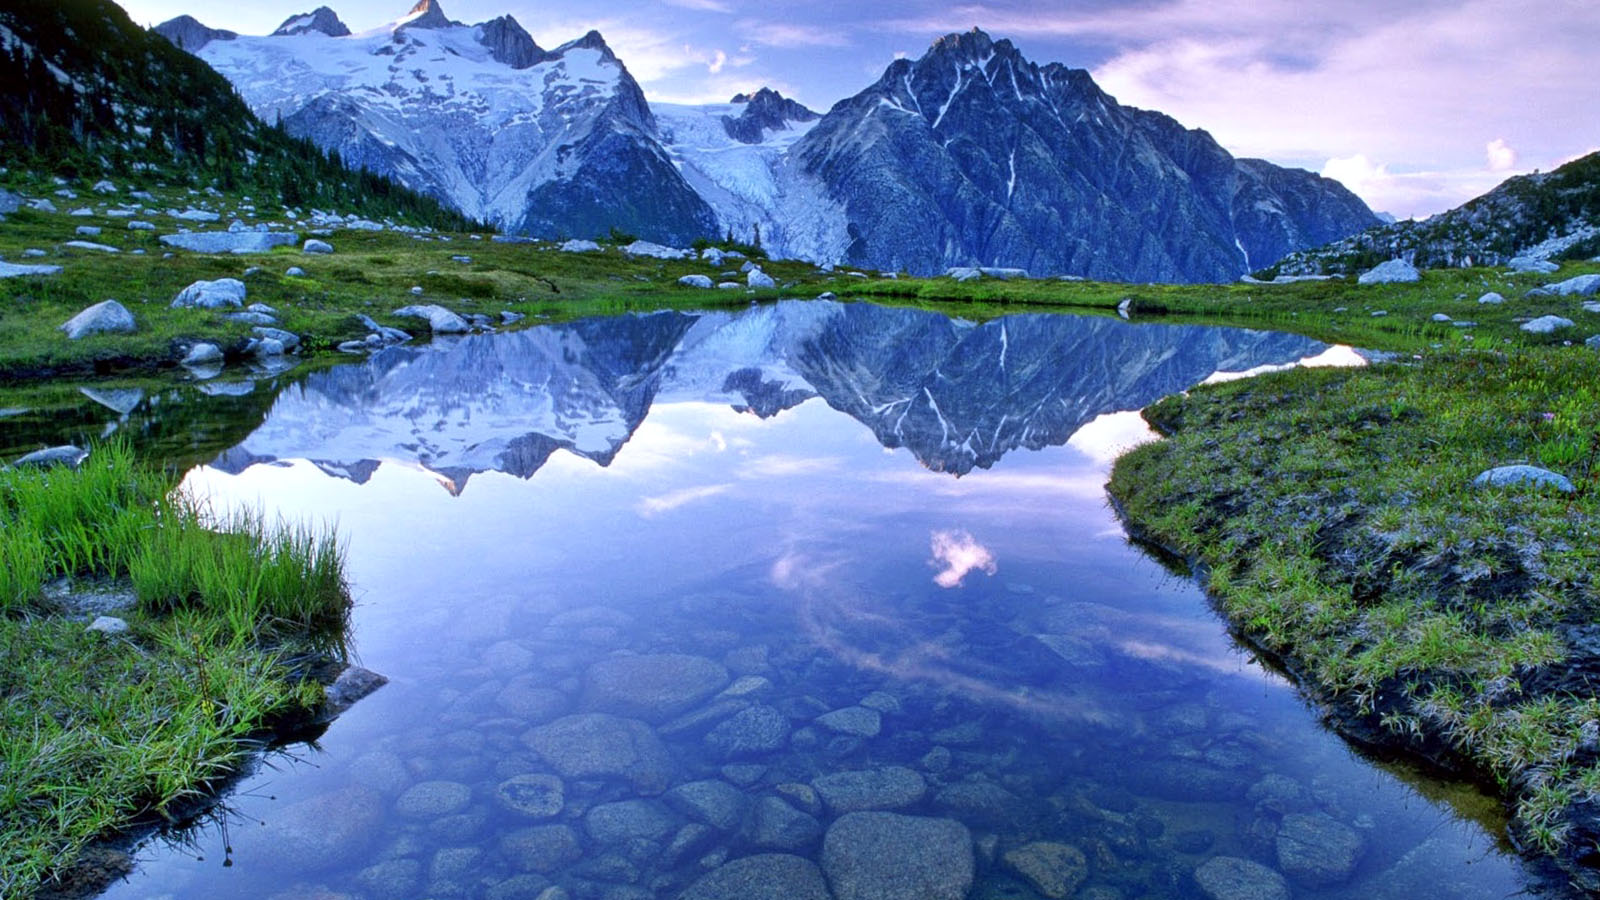 This wallpaper has been tagged with the following keywords: Beautiful Lake And Mountain Landscape Wallpapers Hd Desktop And Mobile Backgrounds